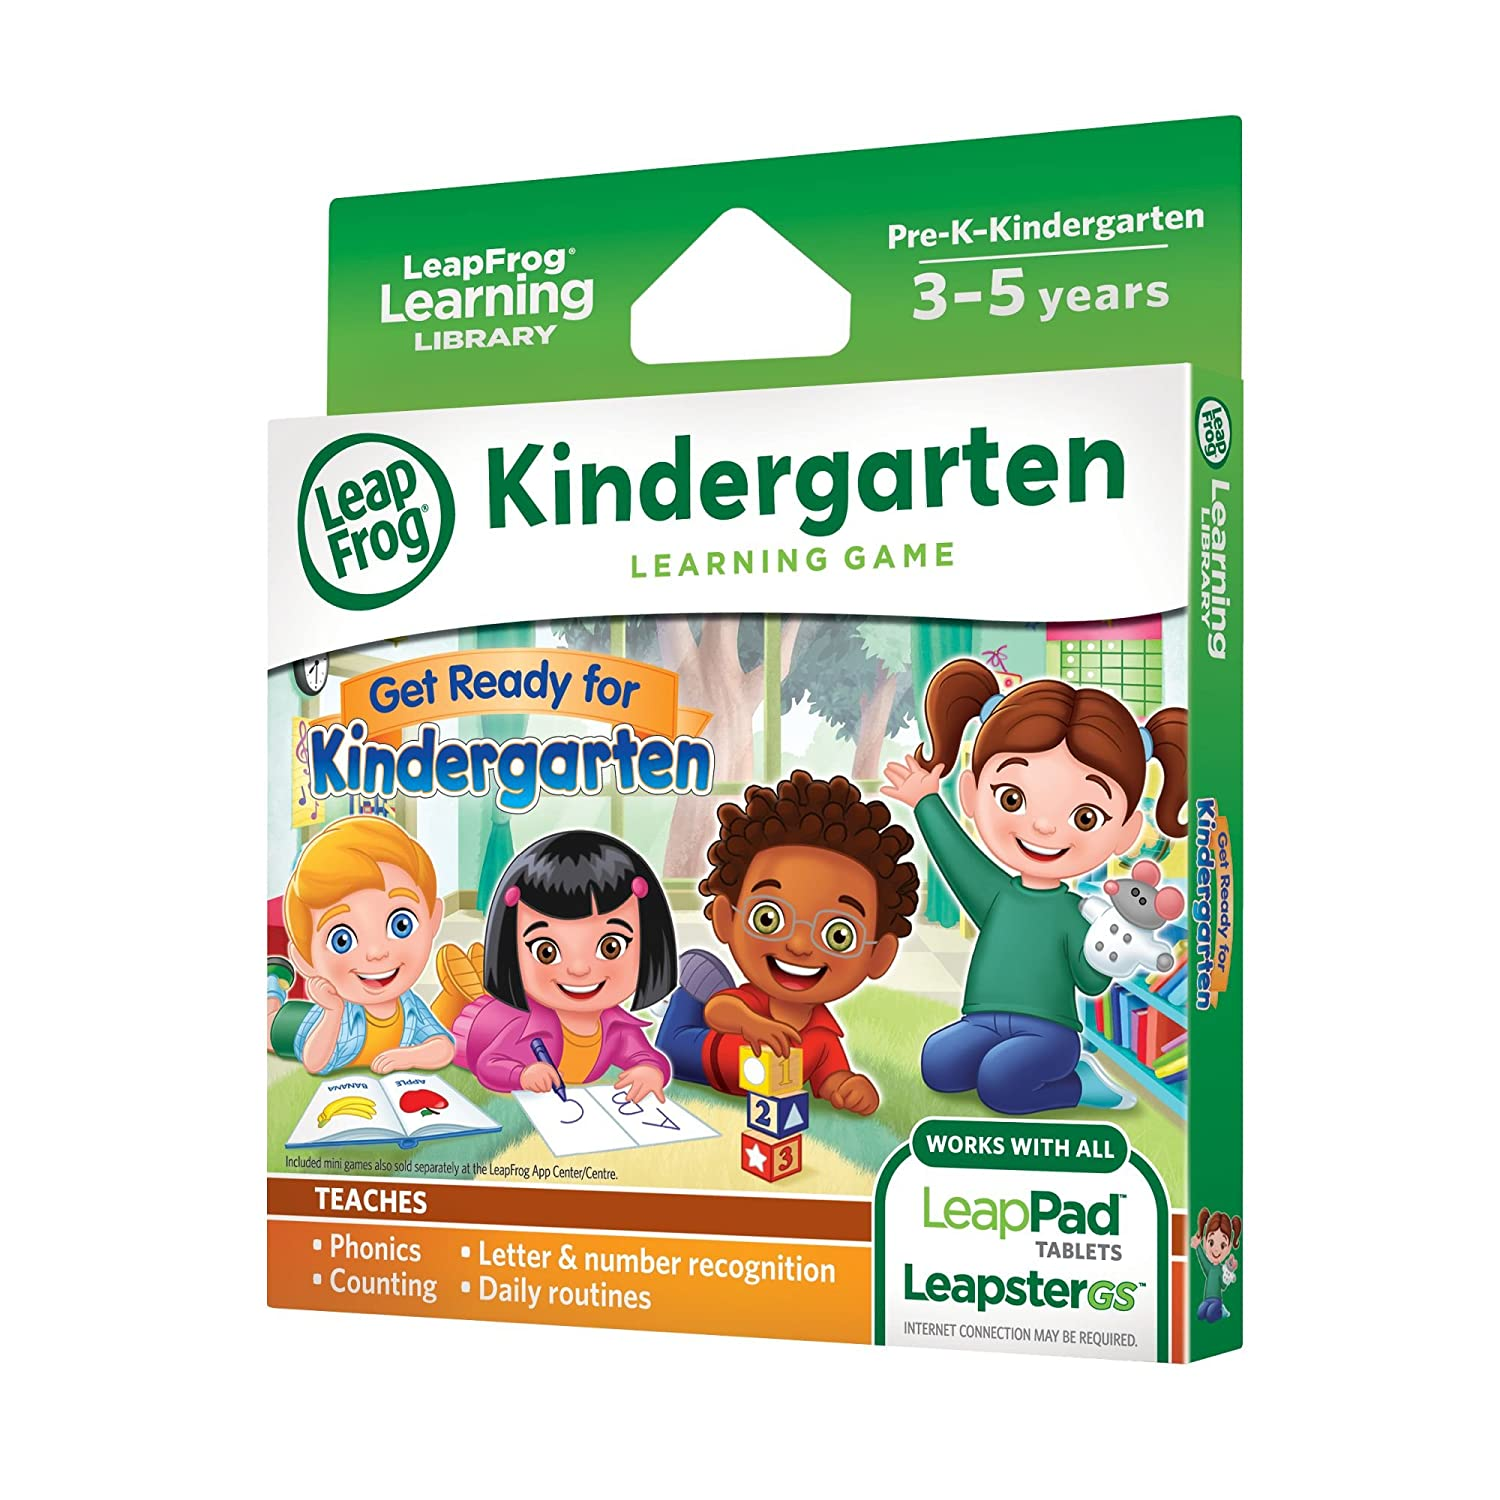 Leapfrog Learning Game Get Ready For Kindergarten For Leappad Tablets And Leap